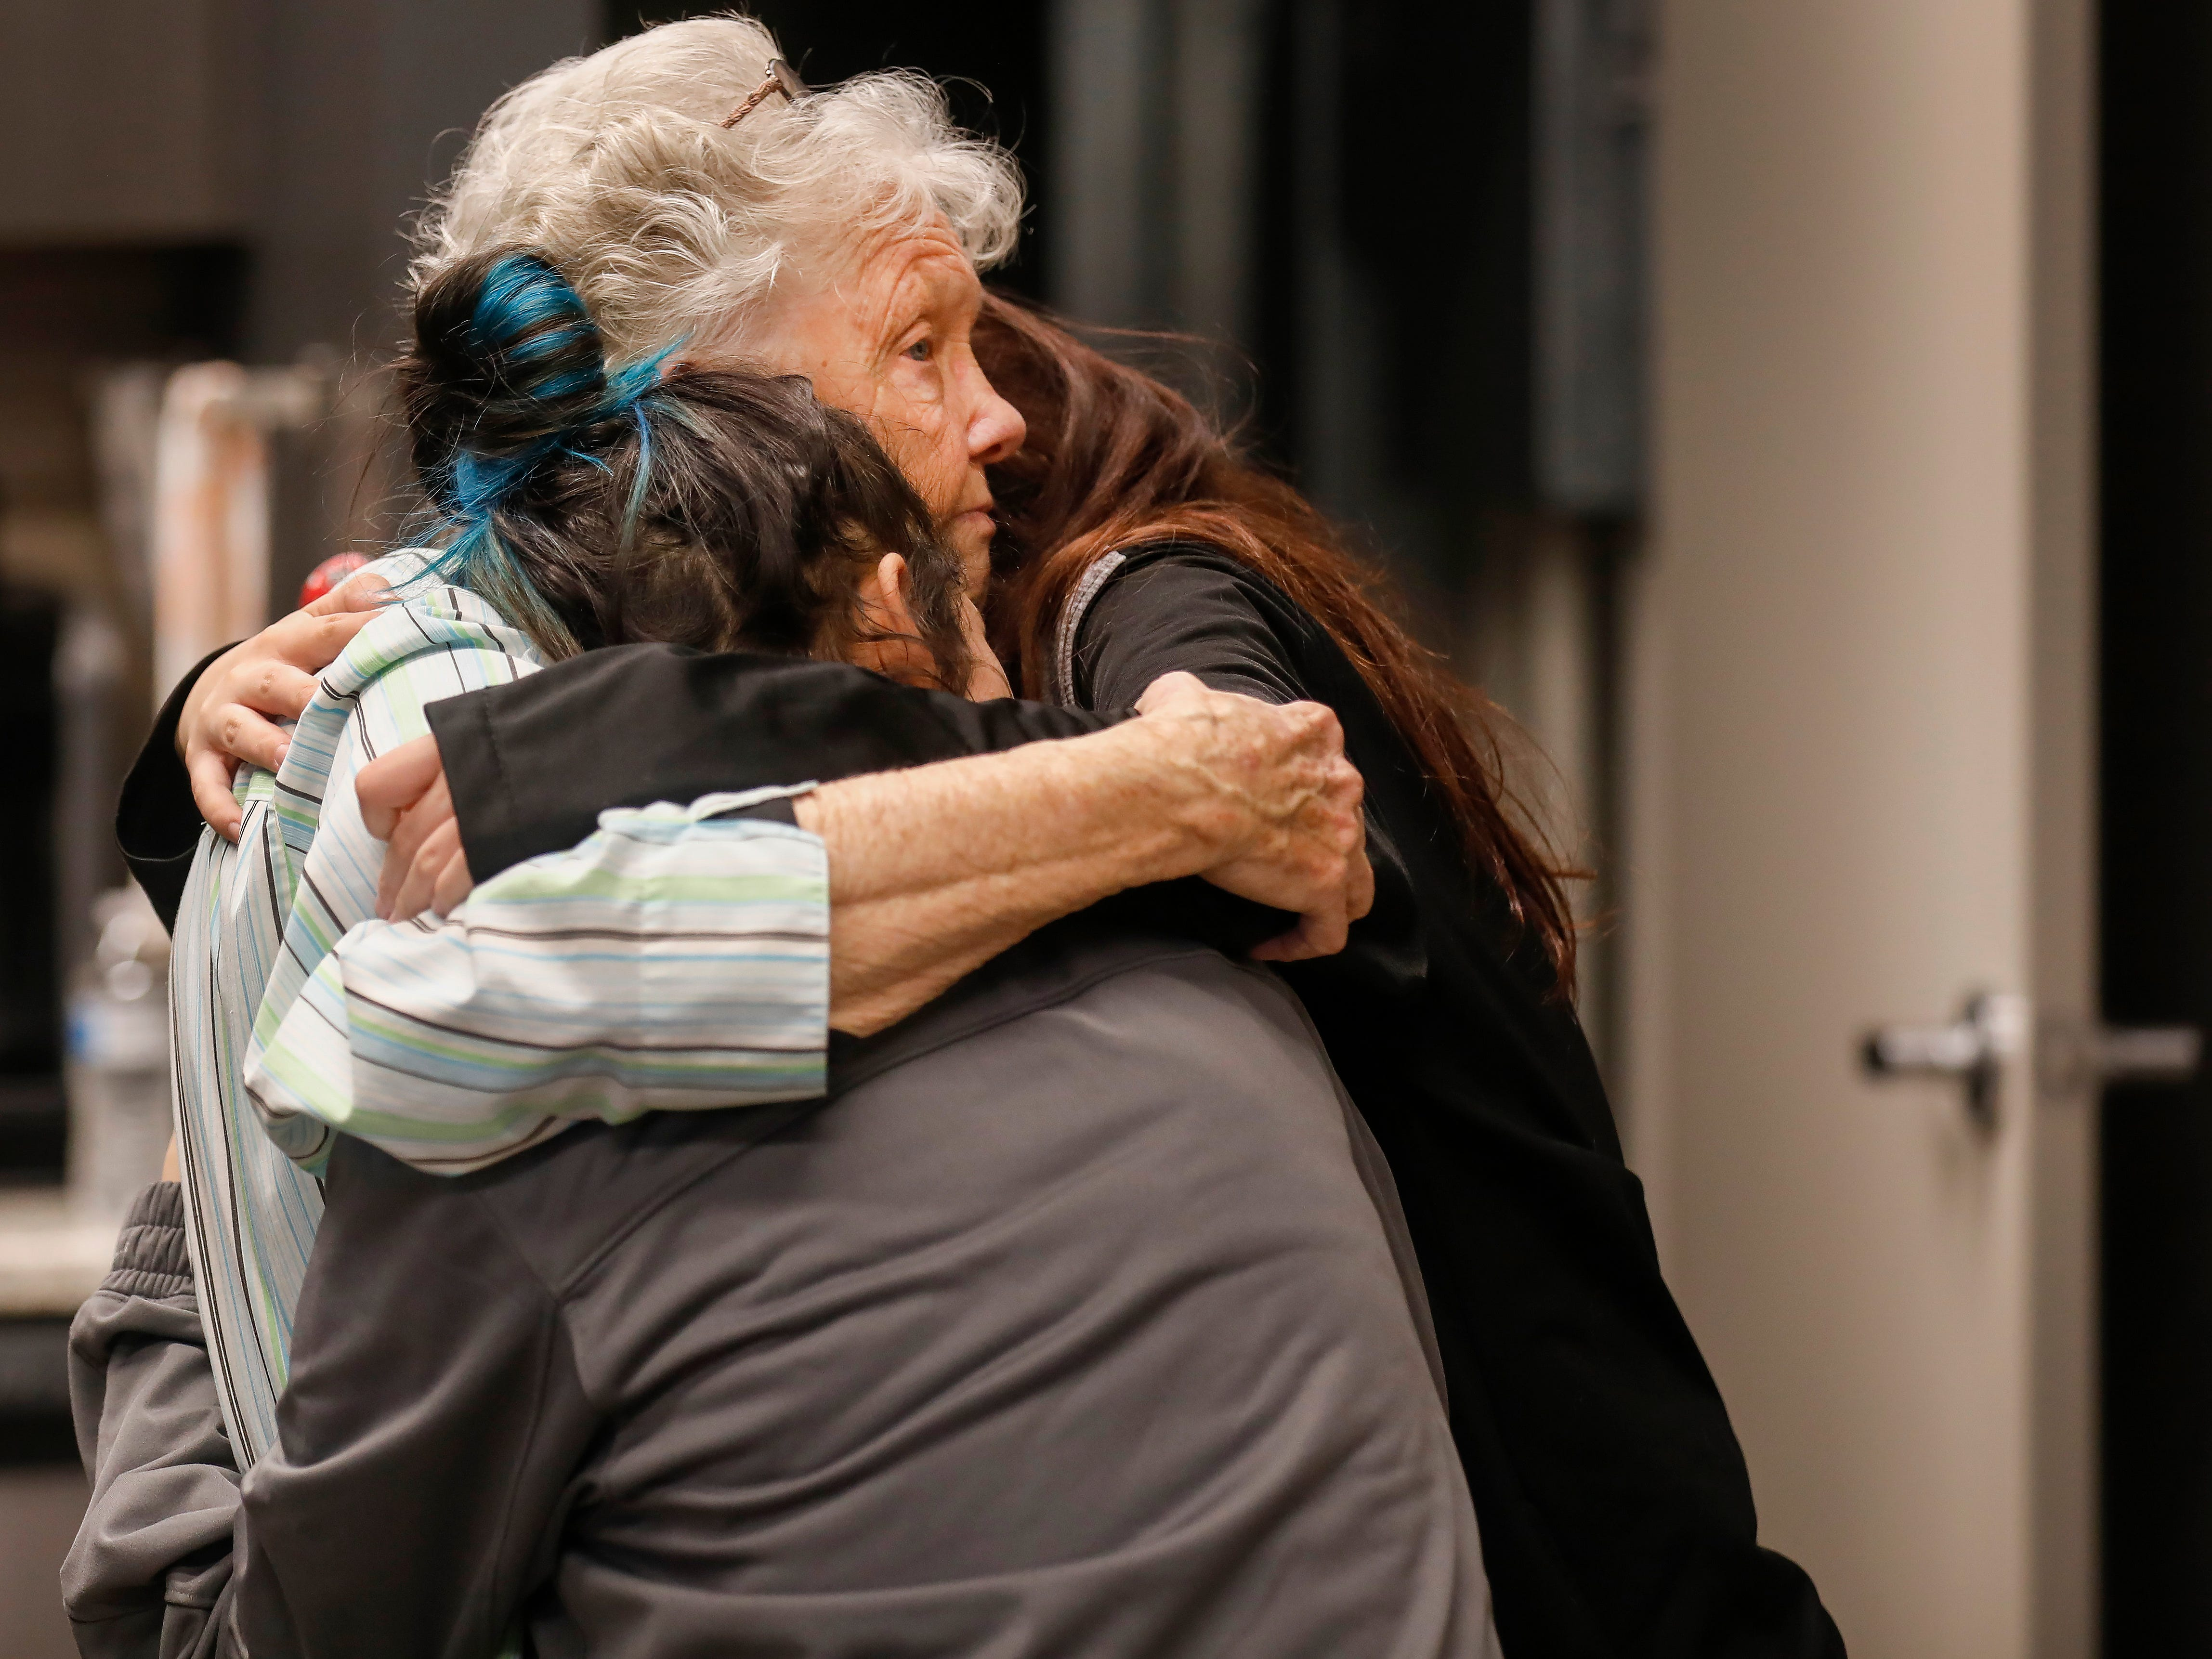 Pat Ayers hugs her great granddaughters Abigail Sahagun, right, and Emileigh Sahagun after employees of J.D. Byrider gave them gifts and forgave their car loan on Wednesday, Dec. 19, 2018. Ayers' daughter and the Sahaguns' grandmother, Barbara Foster, was killed during a road rage incident on Nov. 20.